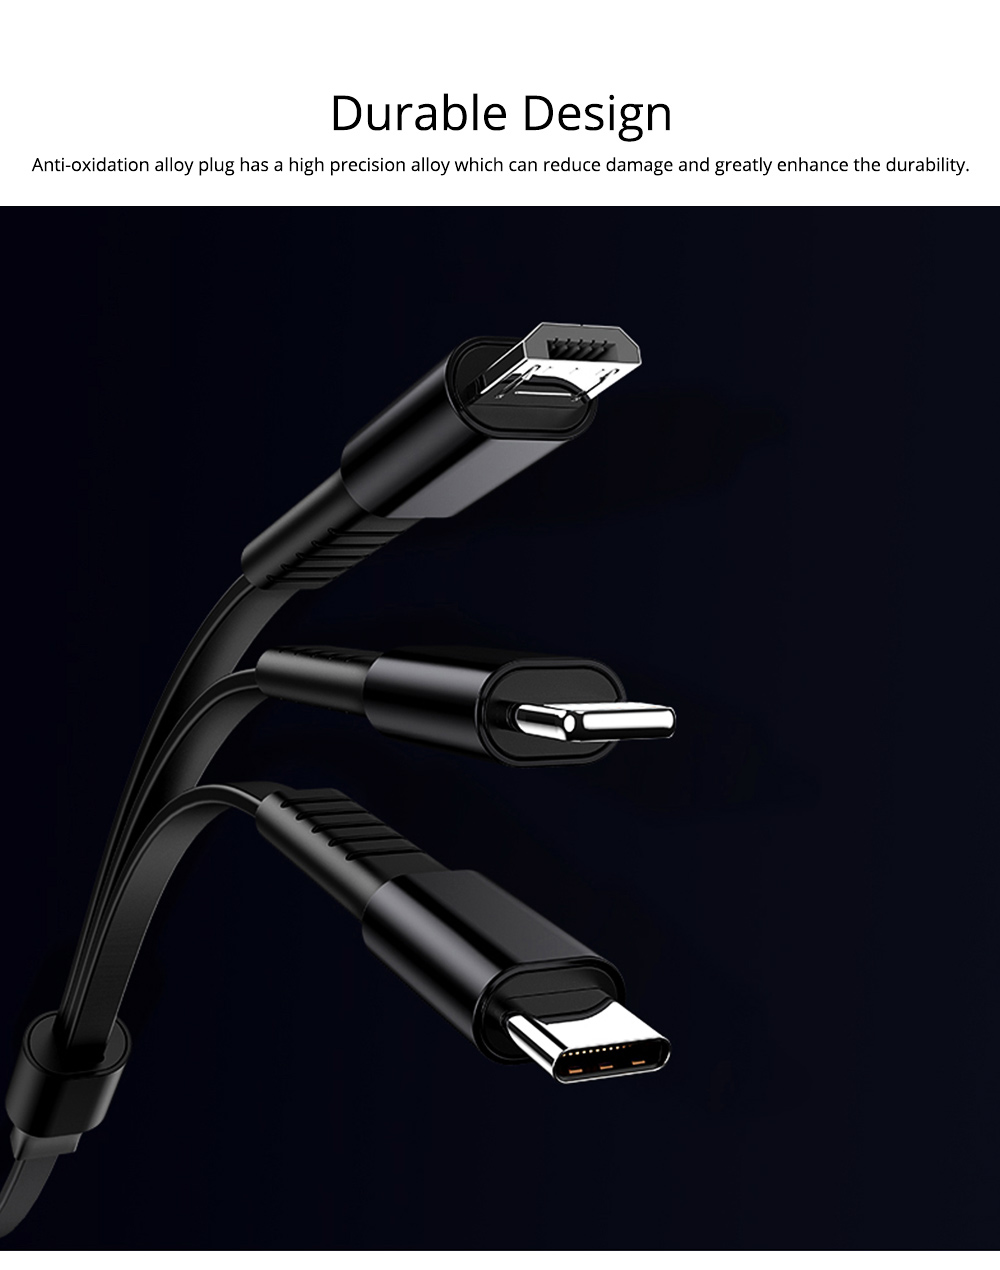 A Line of Triple Flexible Data Cable, Universal Data Cable with Noodle Design for Apple Android & Type-c 3